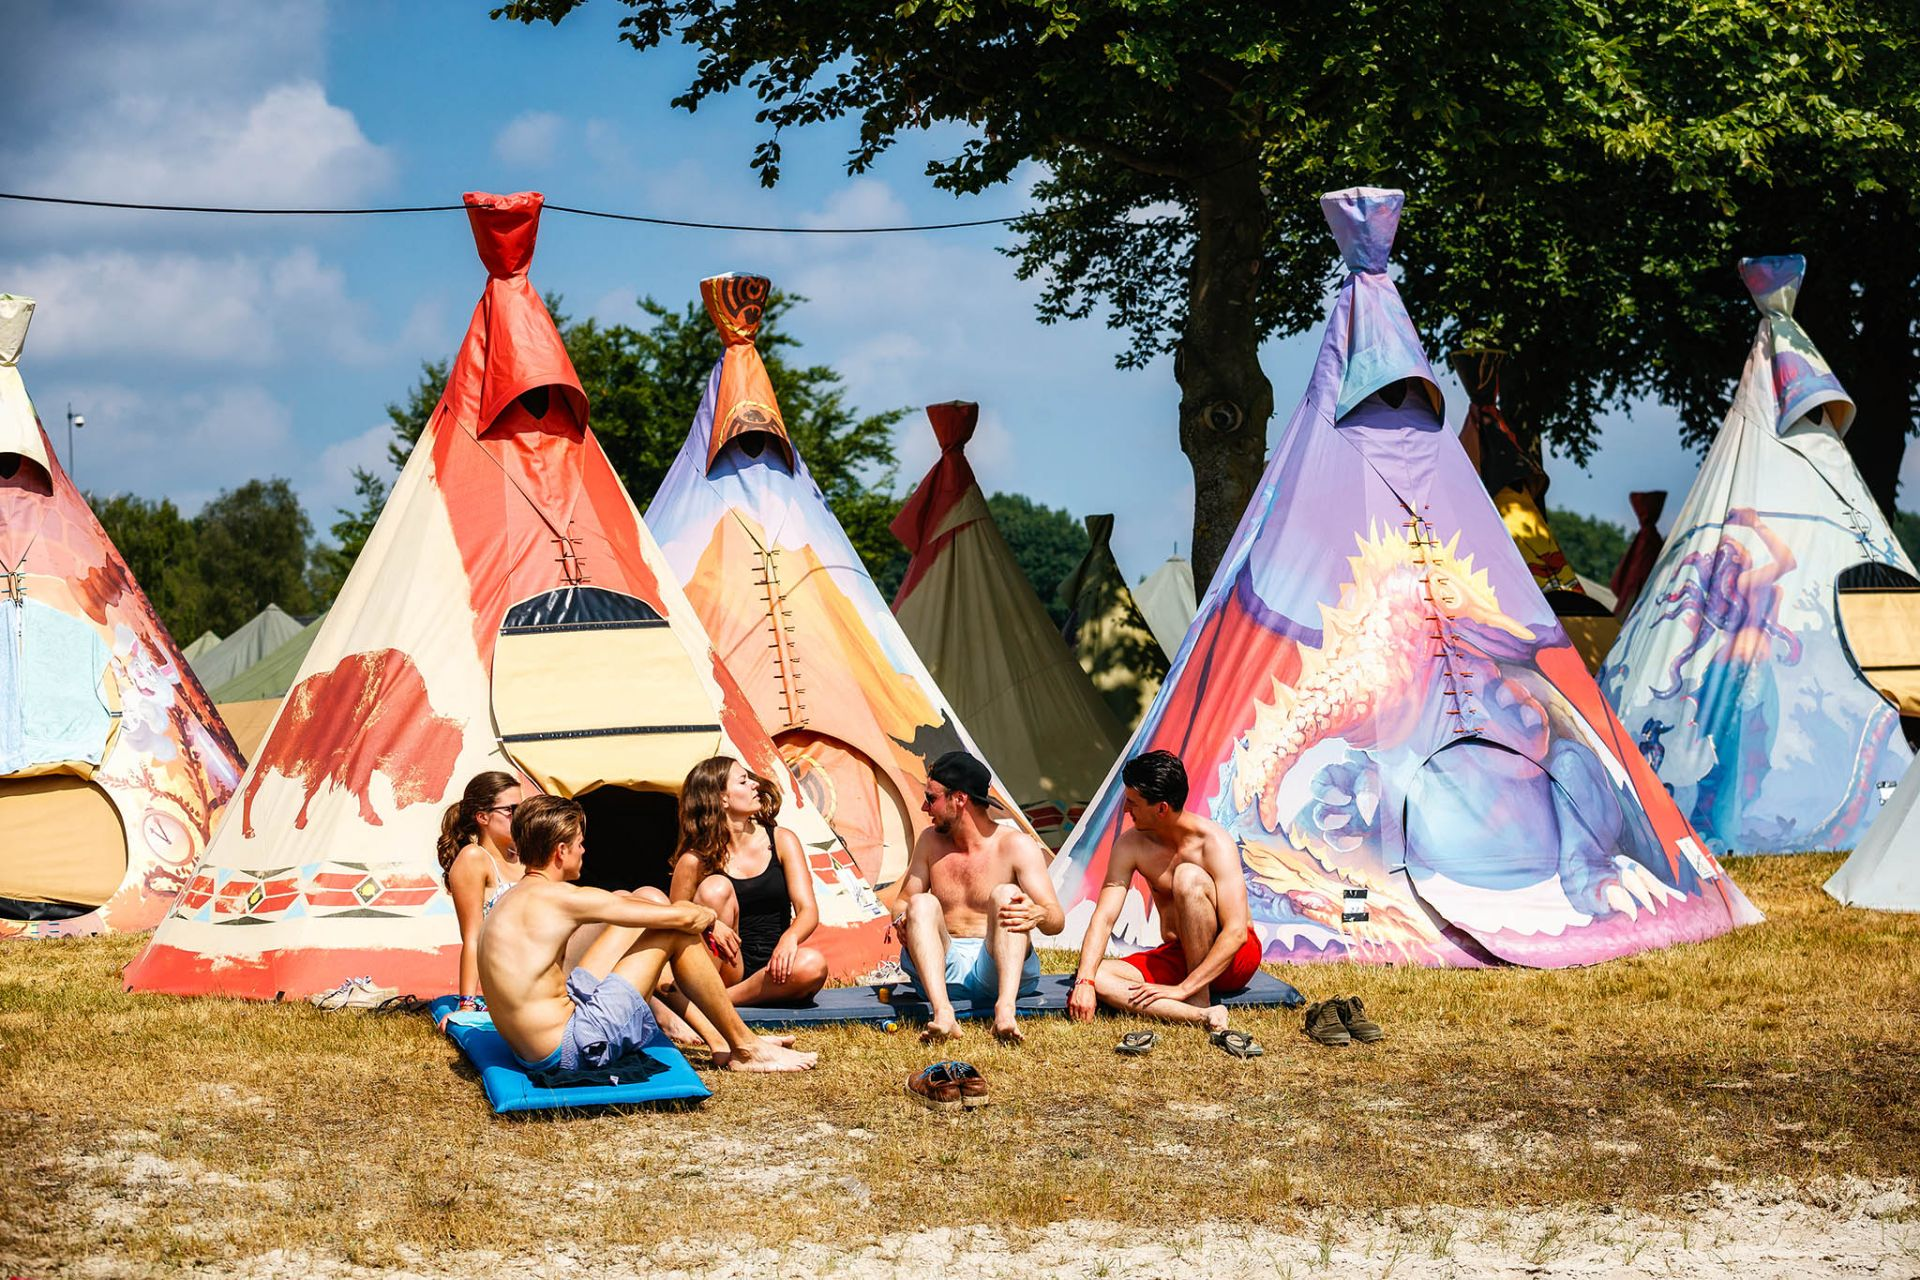 Last Minute tips for your Summer Camp